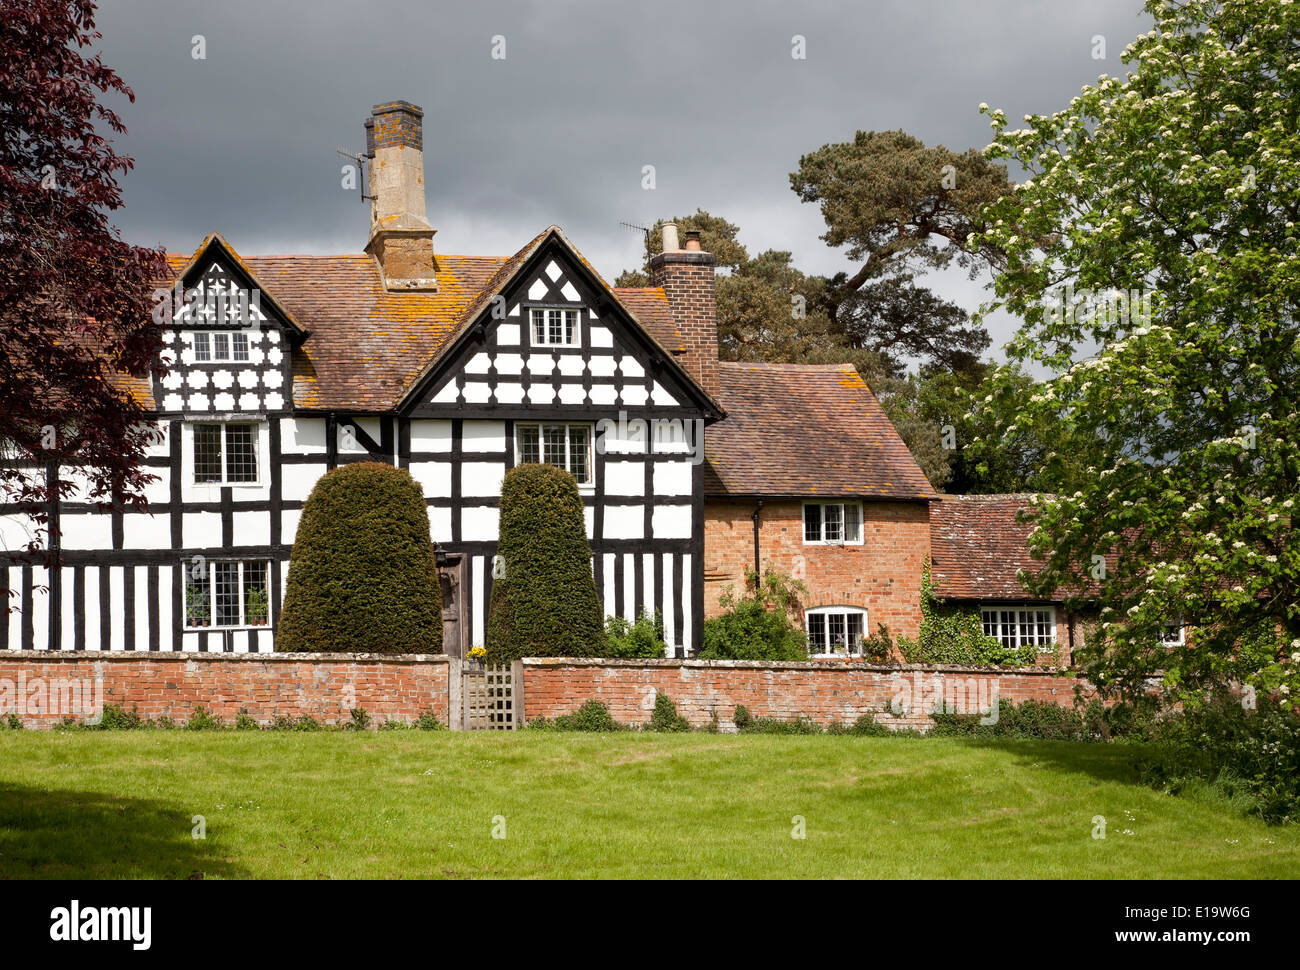 Fine Tudor, black and white house on the green at Preston on Stour, Warwickshire, England. - Stock Image